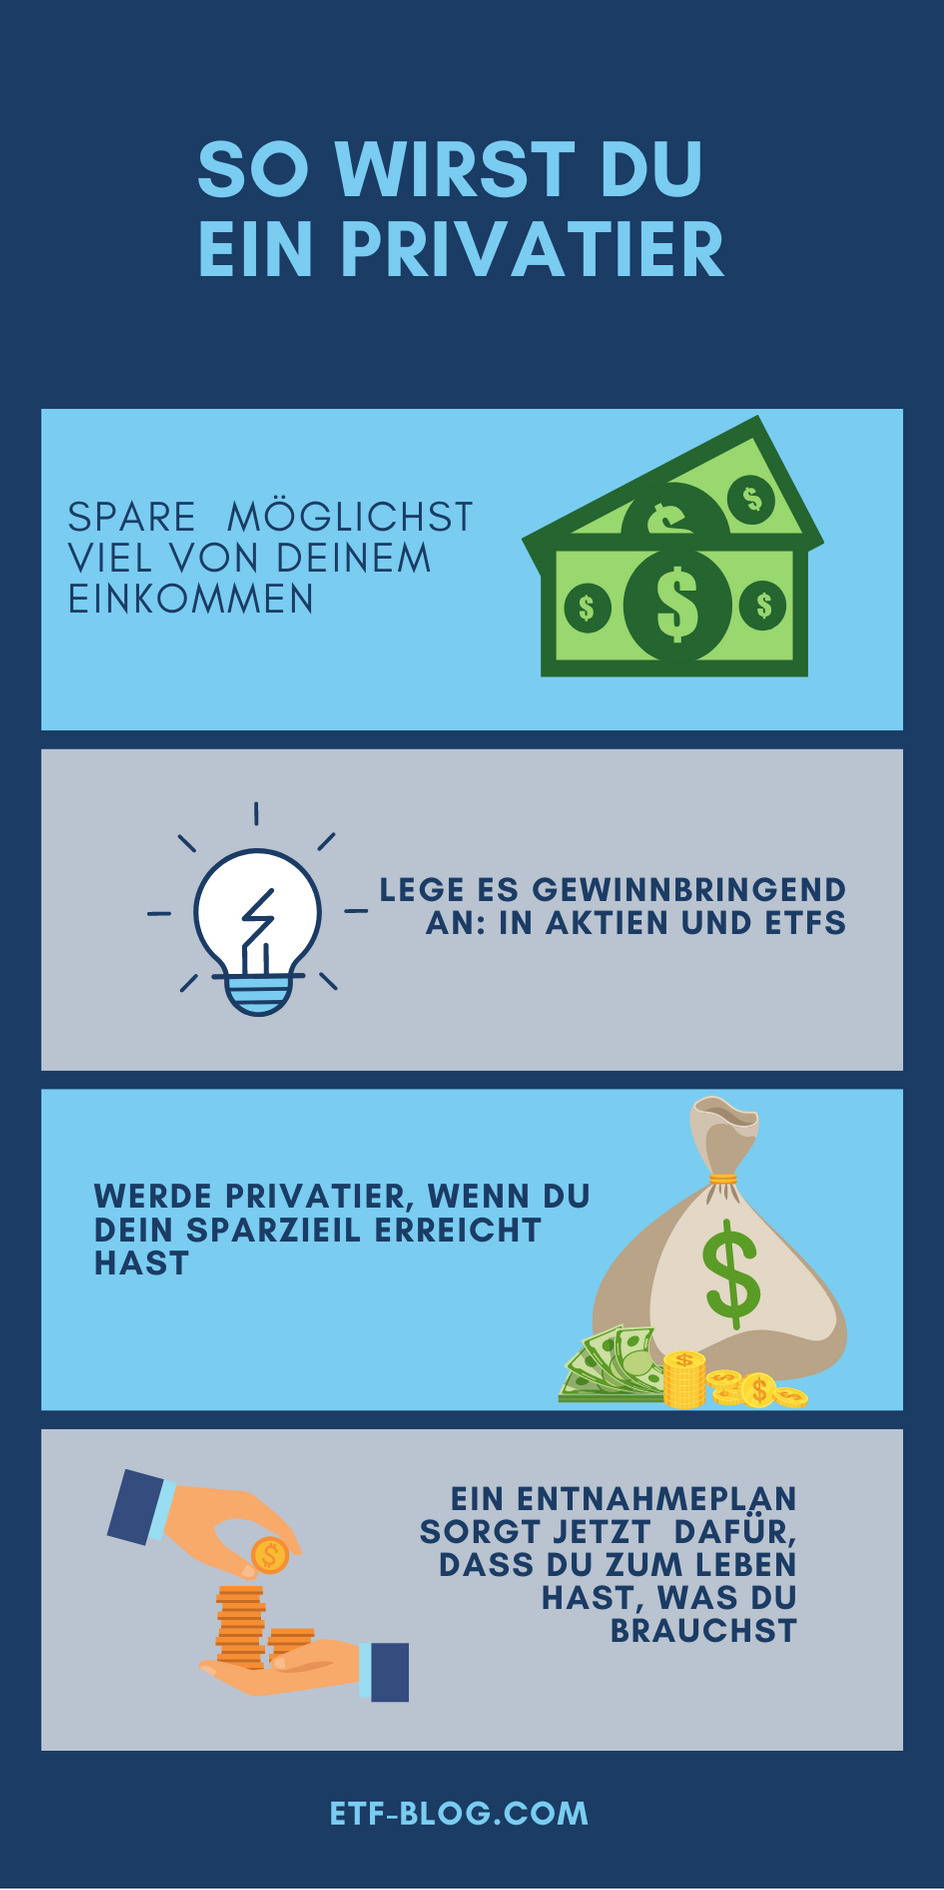 Privatier werden